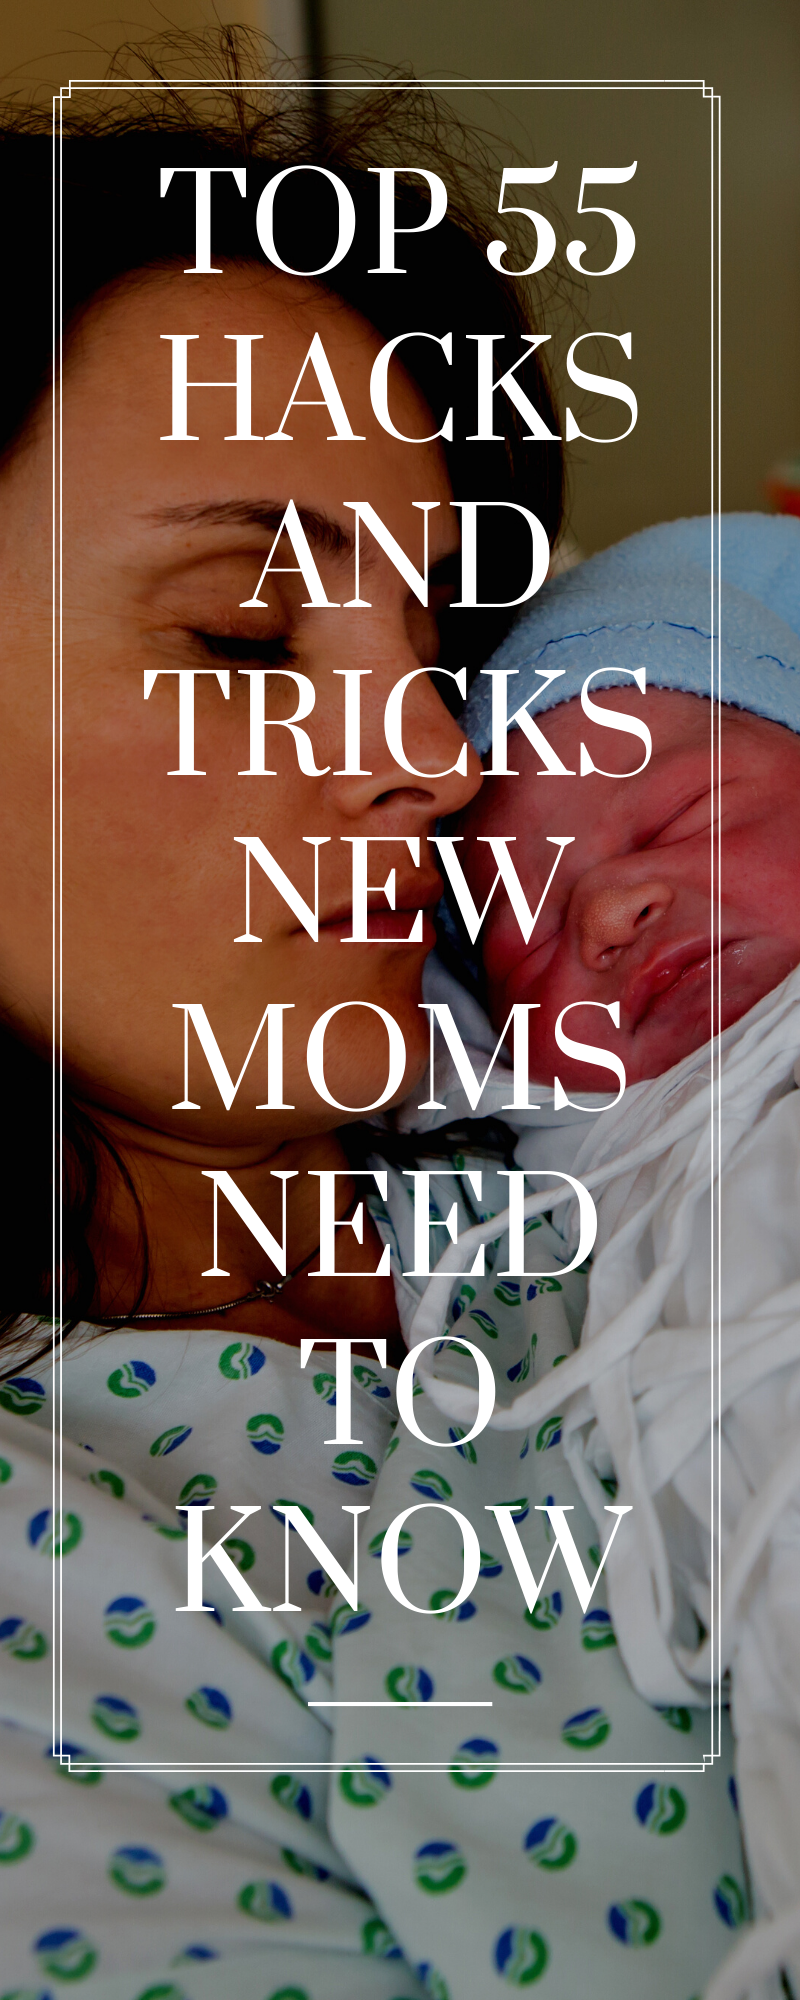 55 HACKS AND TRICKS NEW MOMS NEED TO KNOW